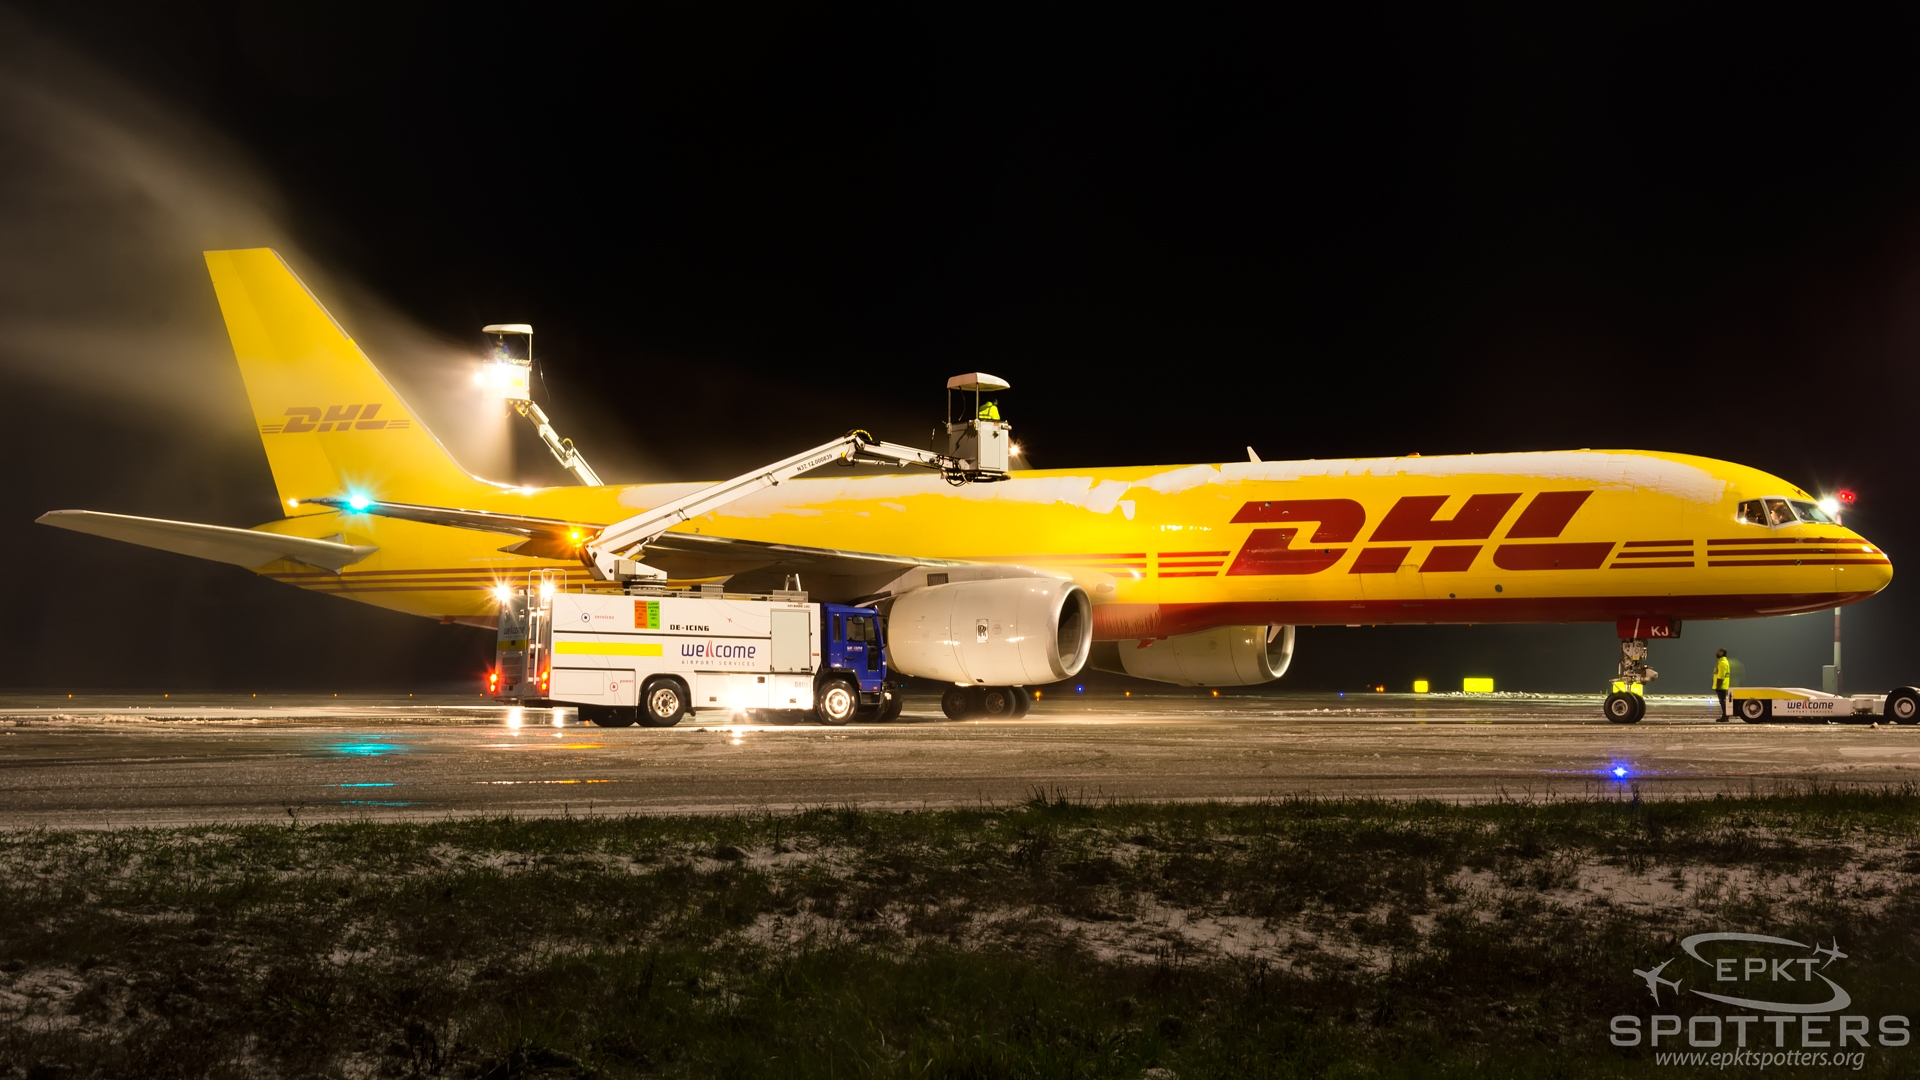 G-DHKJ - Boeing 757 -28A(PCF) (DHL Air) / Pyrzowice - Katowice Poland [EPKT/KTW]